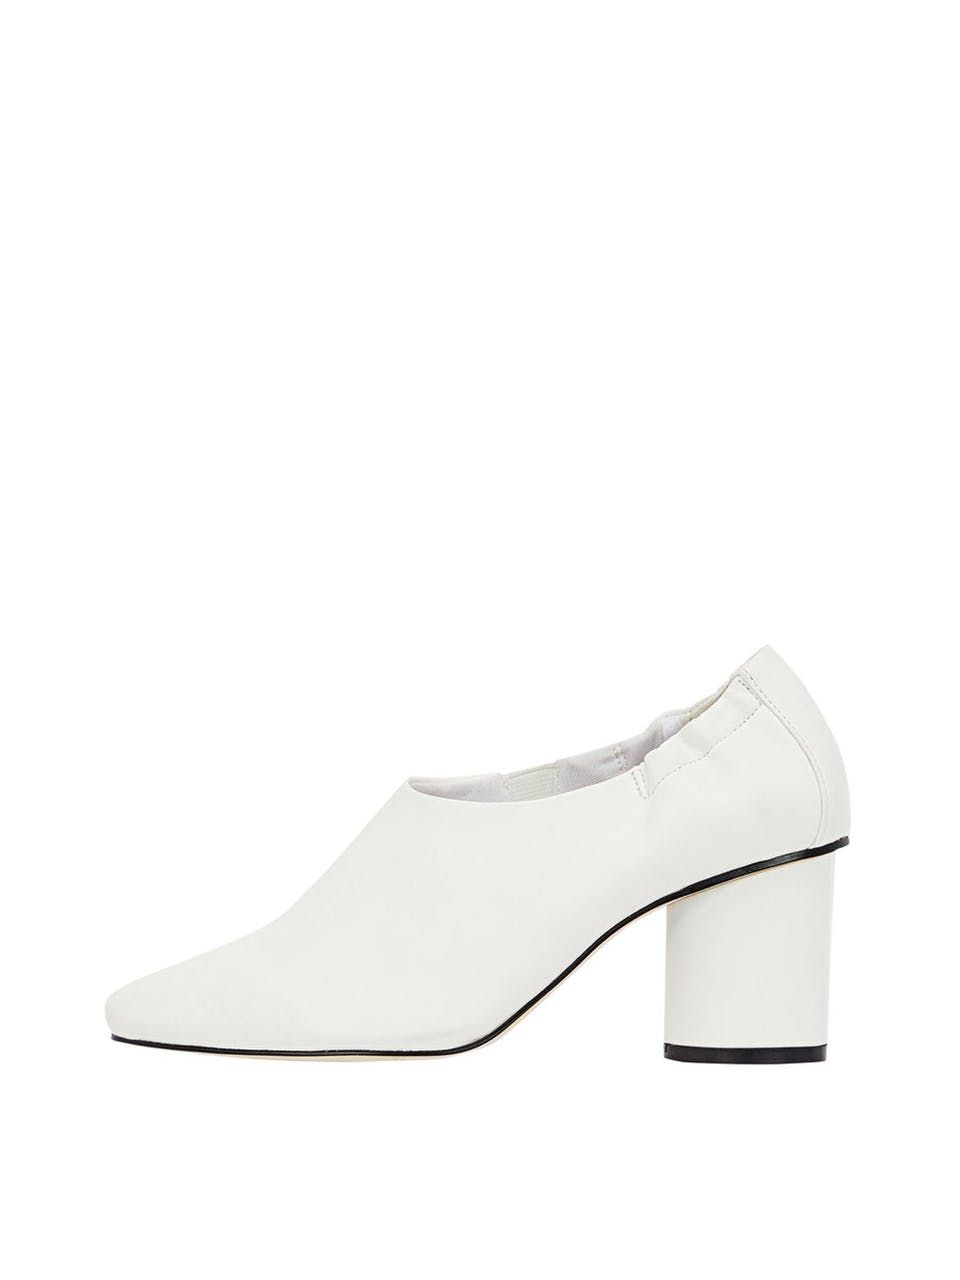 From Pumps Heels Shoeaholics Women's For BiancoShoes White LUGpqSzVM